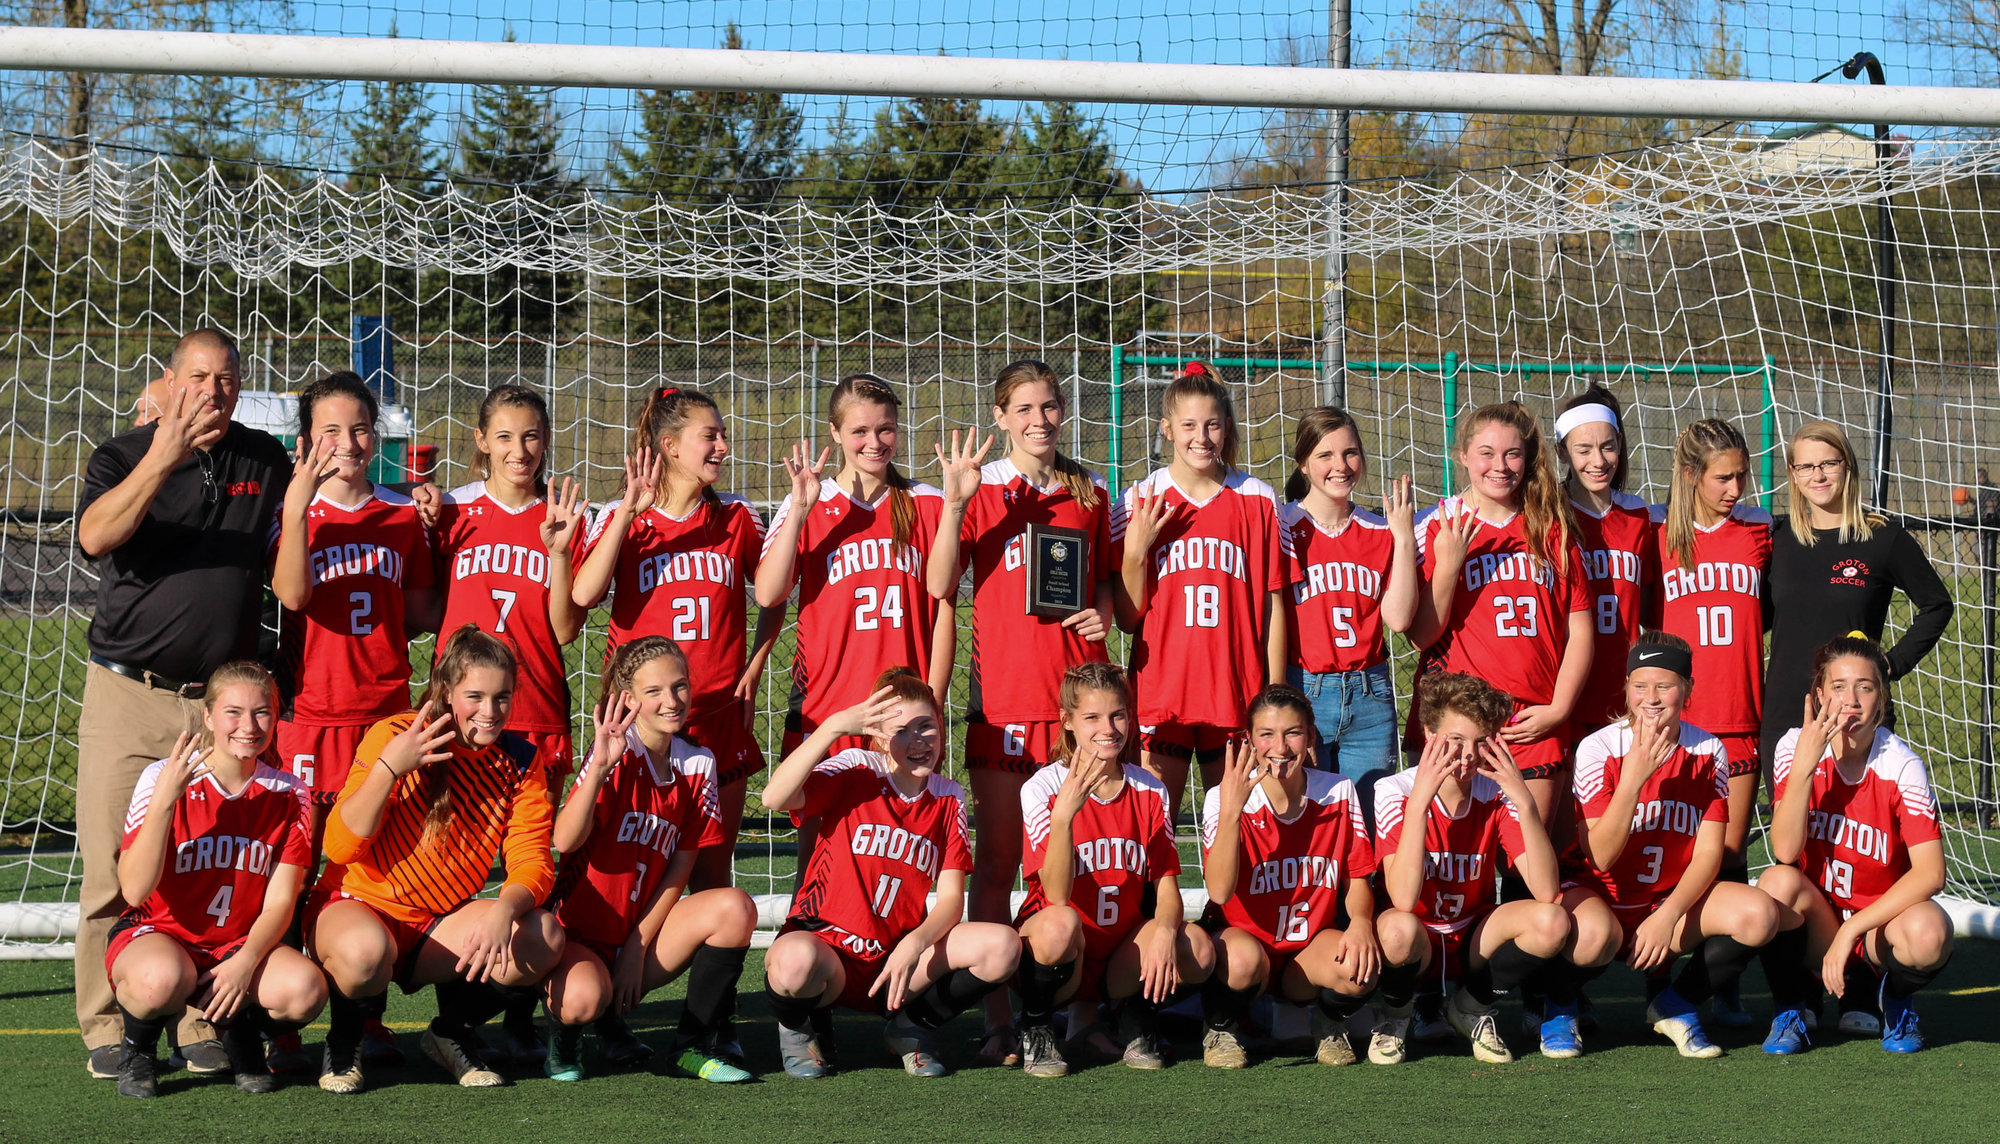 The Groton girls soccer team celebrates its fourth consecutive IAC Championship victory.